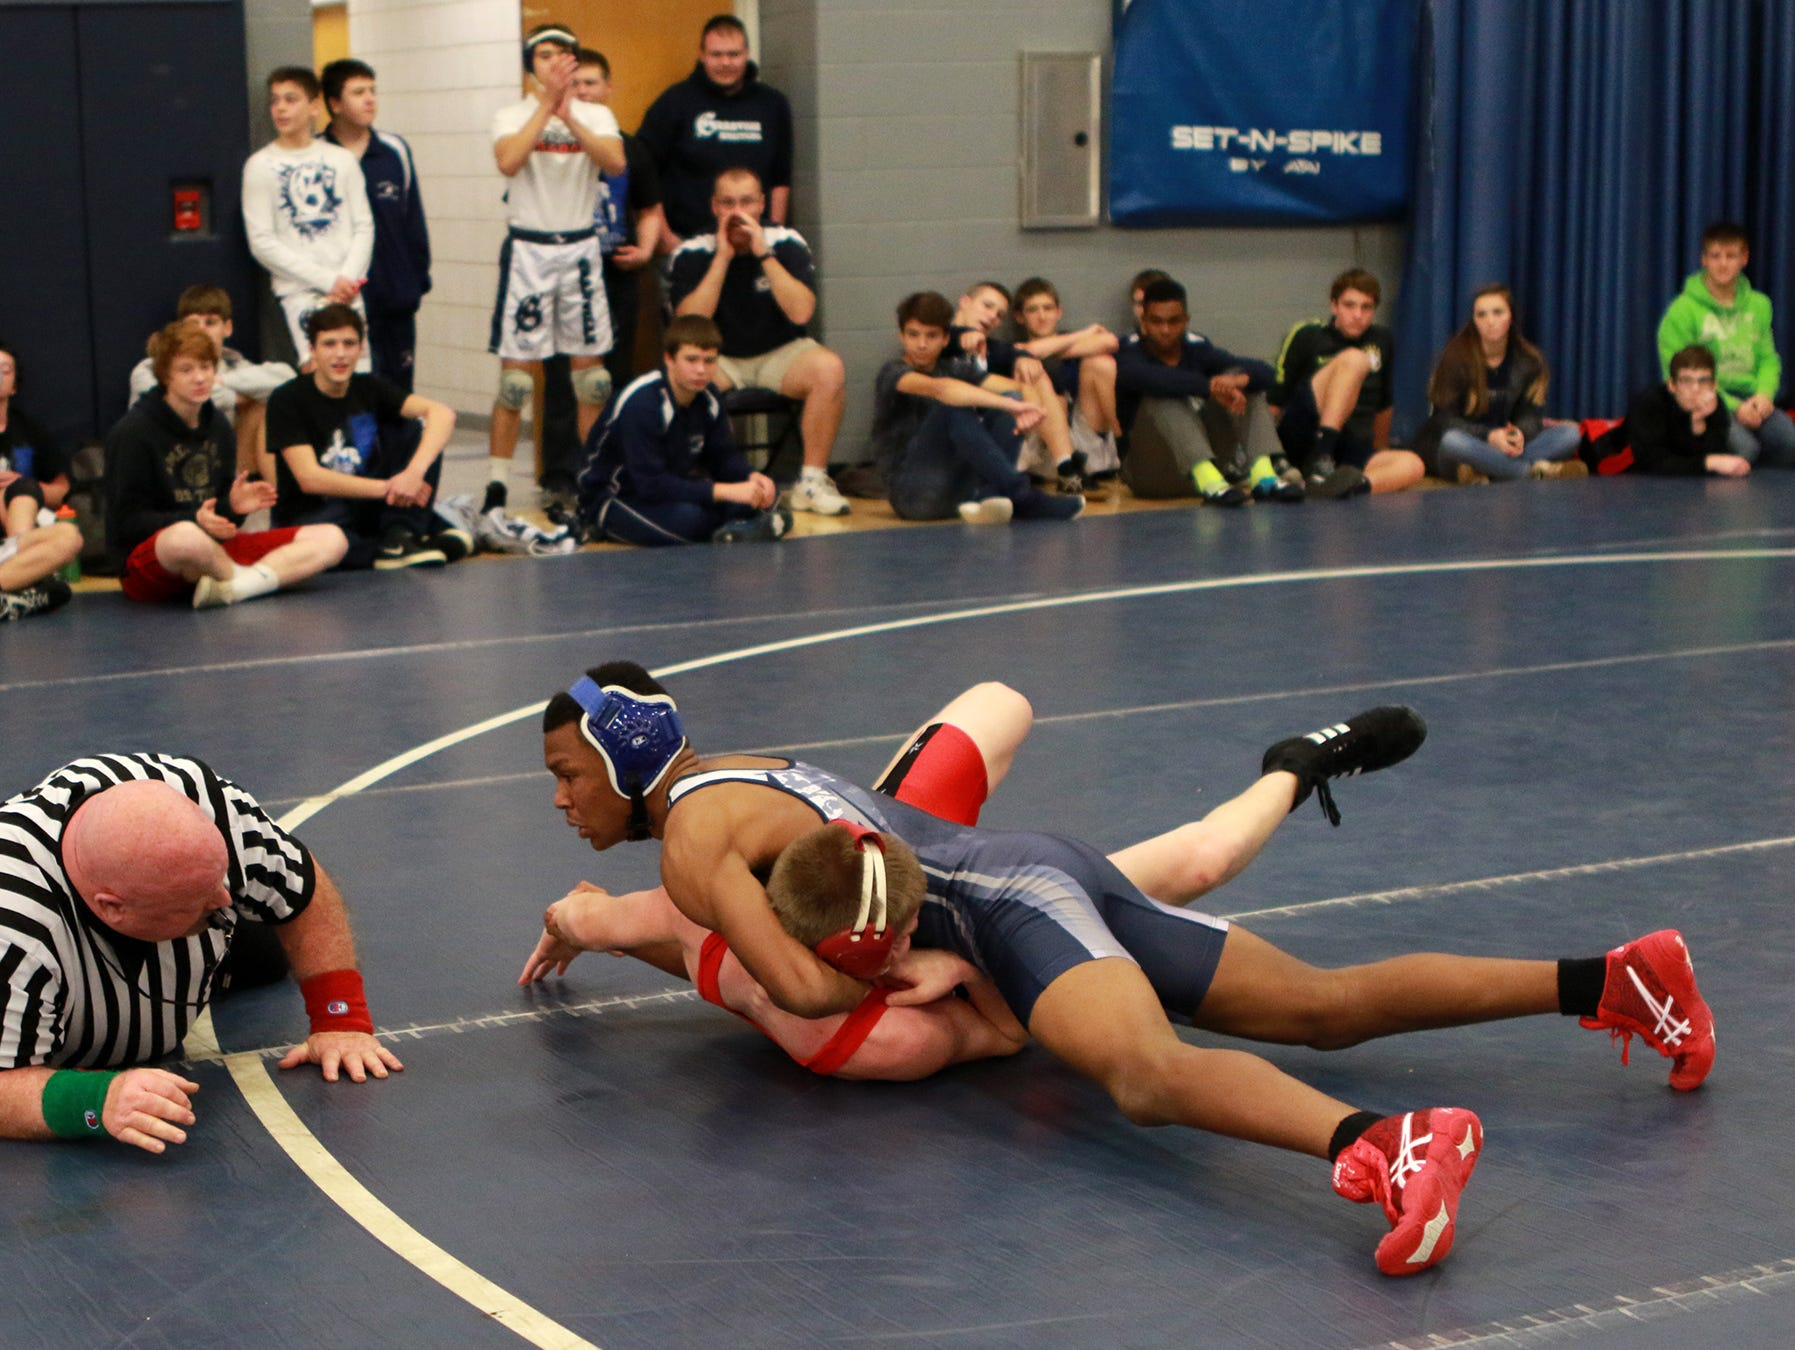 Tristan Haley of Granville pins Scott Bourff of Crooksville in the Granville Wrestling Invitational.